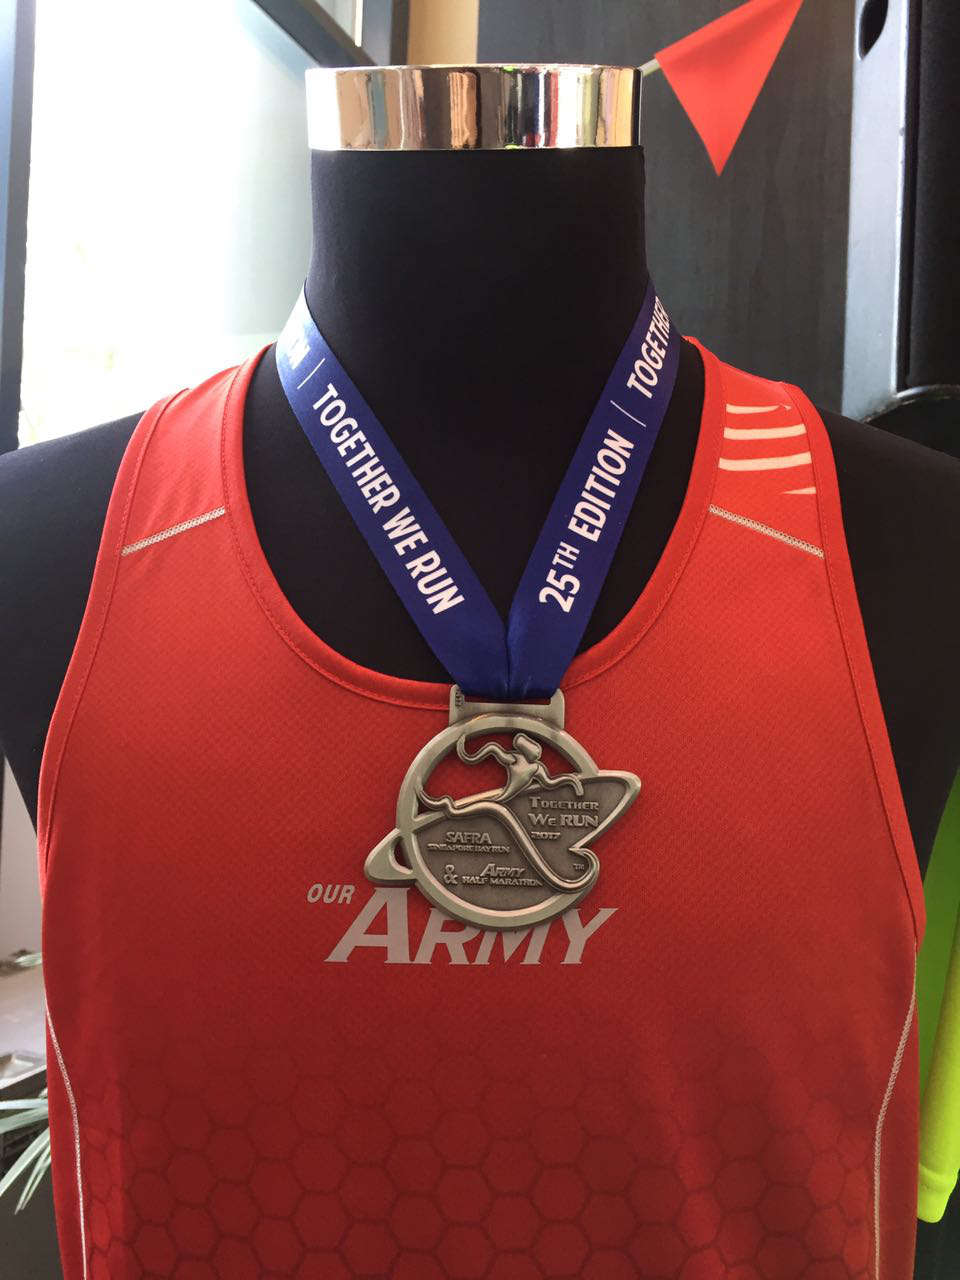 SAFRA Singapore Bay Run & Army Half Marathon (SSBR & AHM) 2017 Medals Designs and Race Entitlements